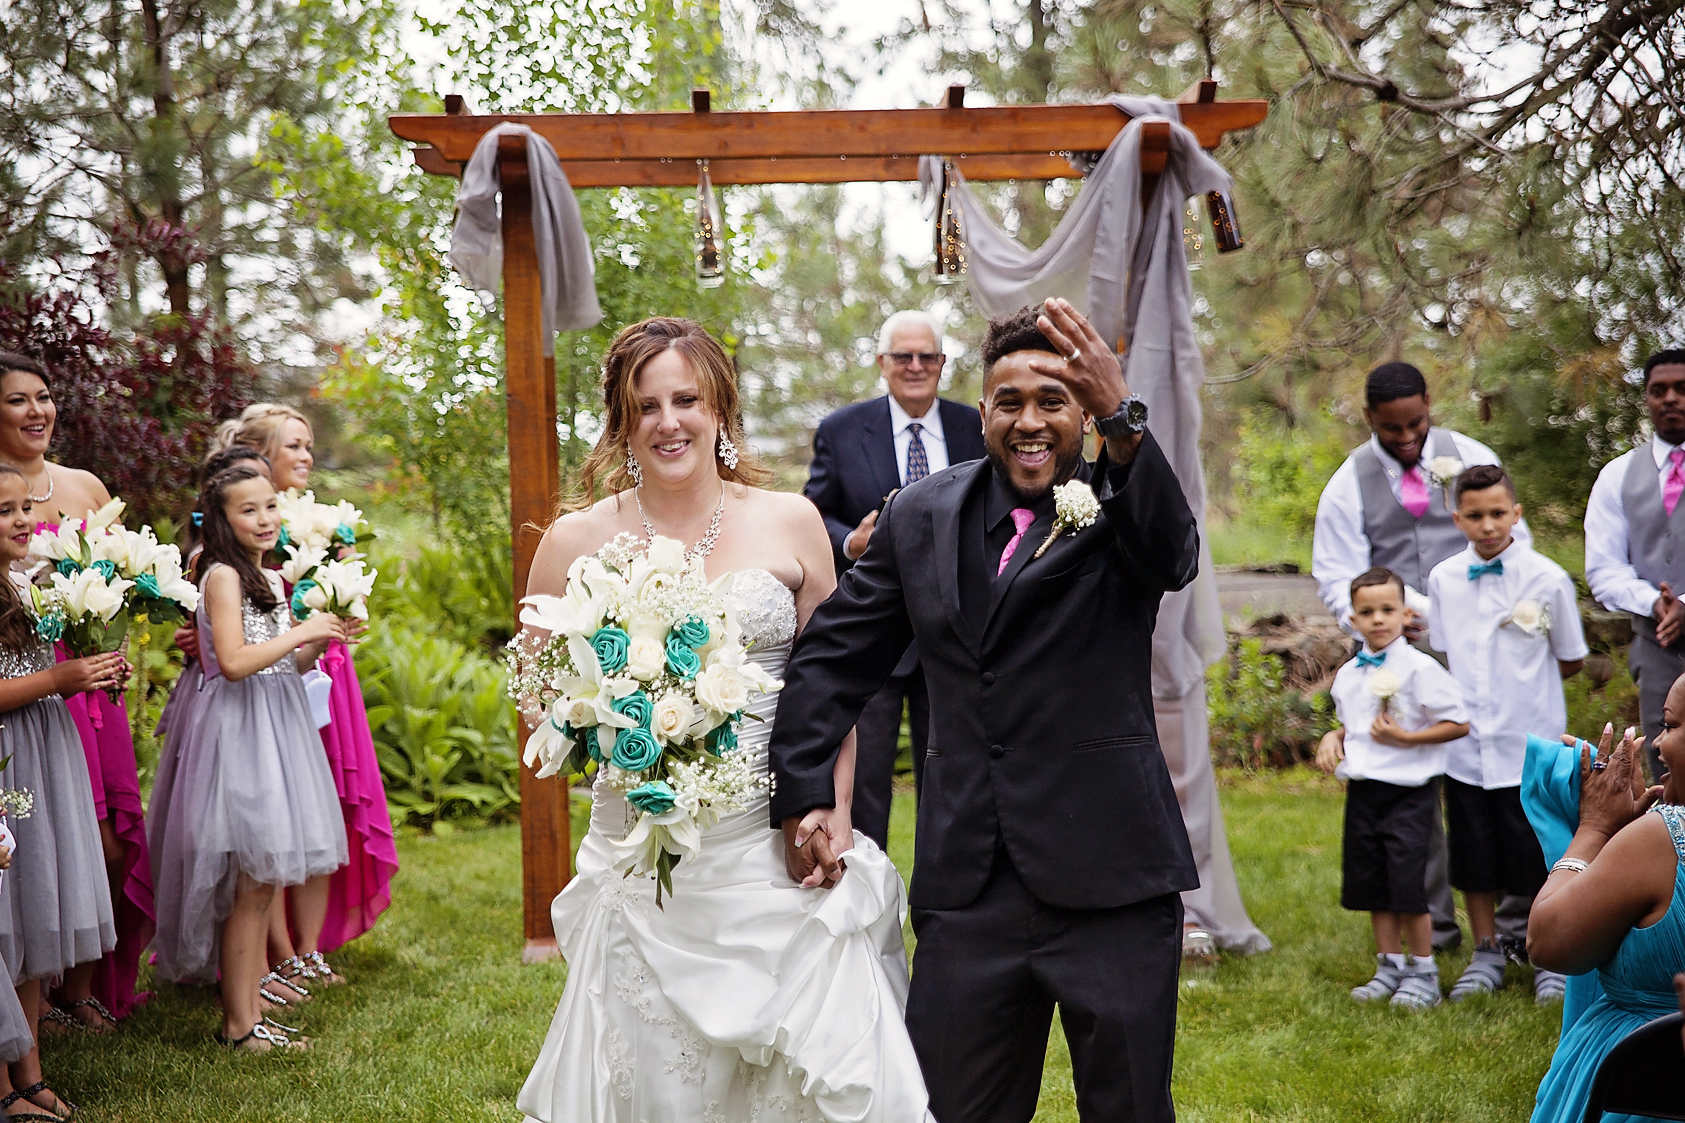 Photographer perfectly captures happily ever after at country outdoor wedding in Cheney, WA